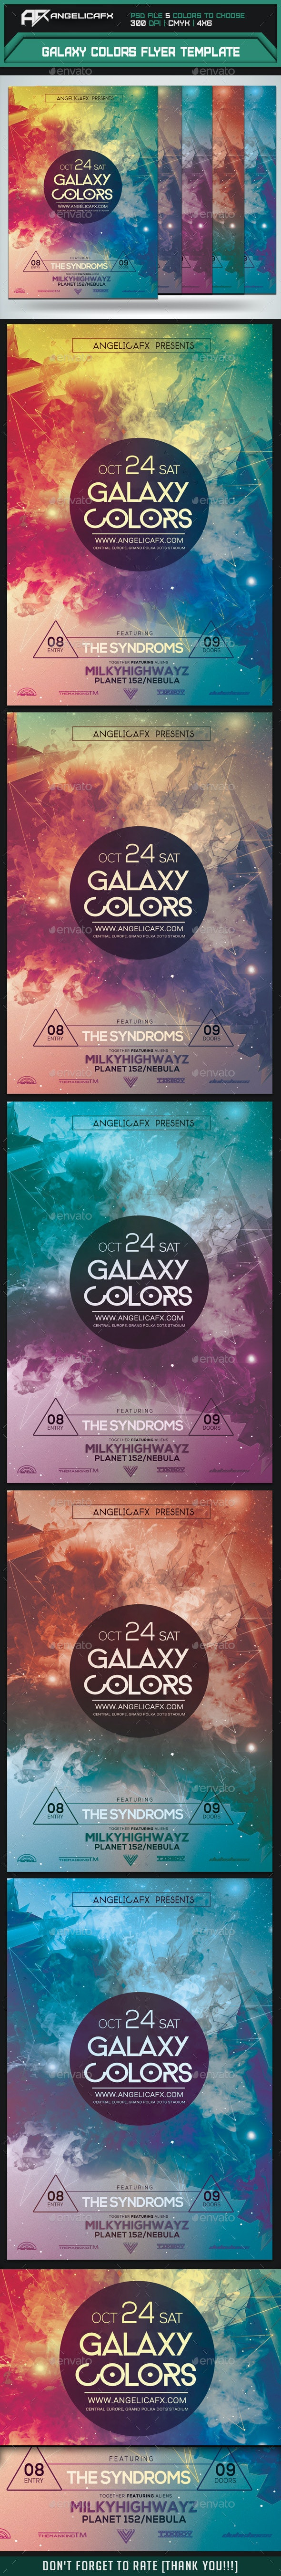 Galaxy Colors Flyer Template - Flyers Print Templates